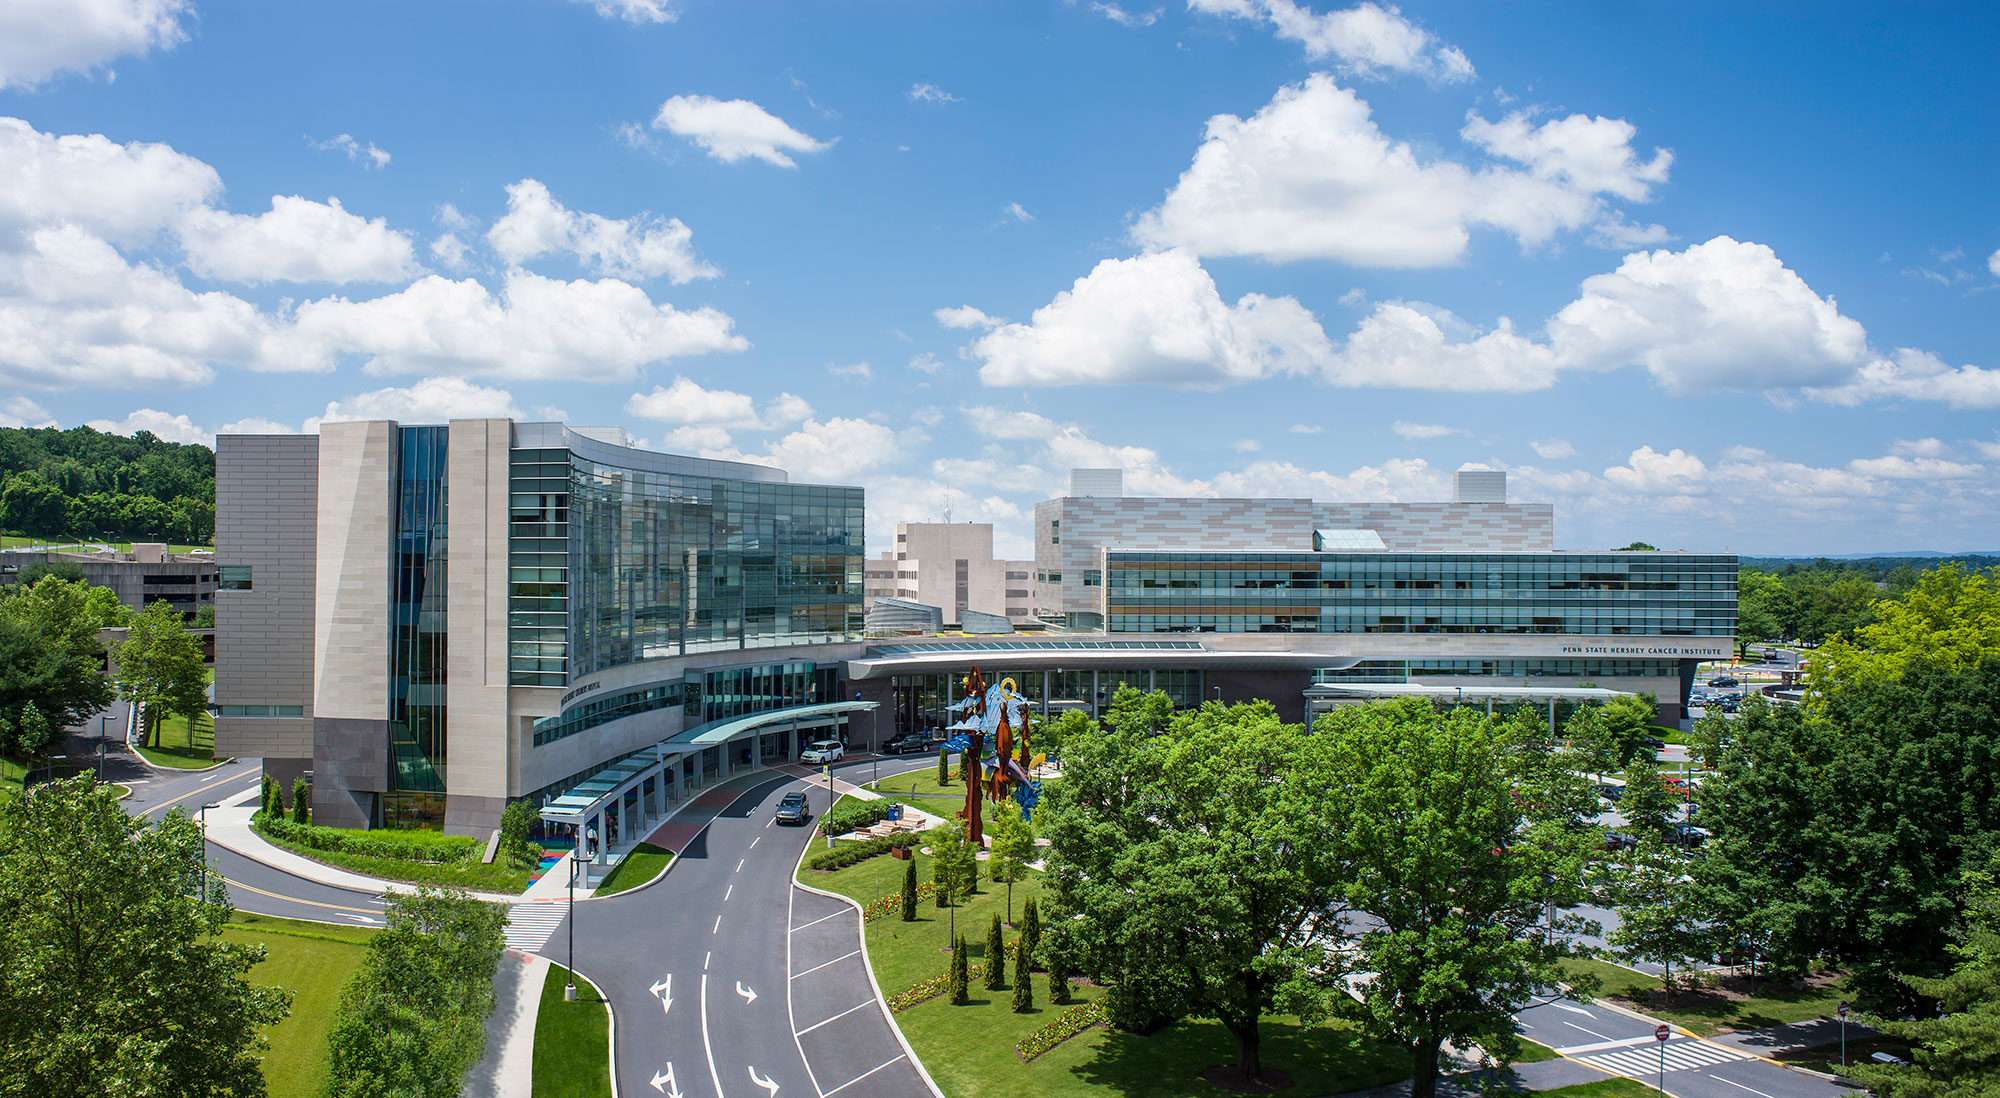 An aerial view of the campus of Penn State Health Milton S. Hershey Medical Center